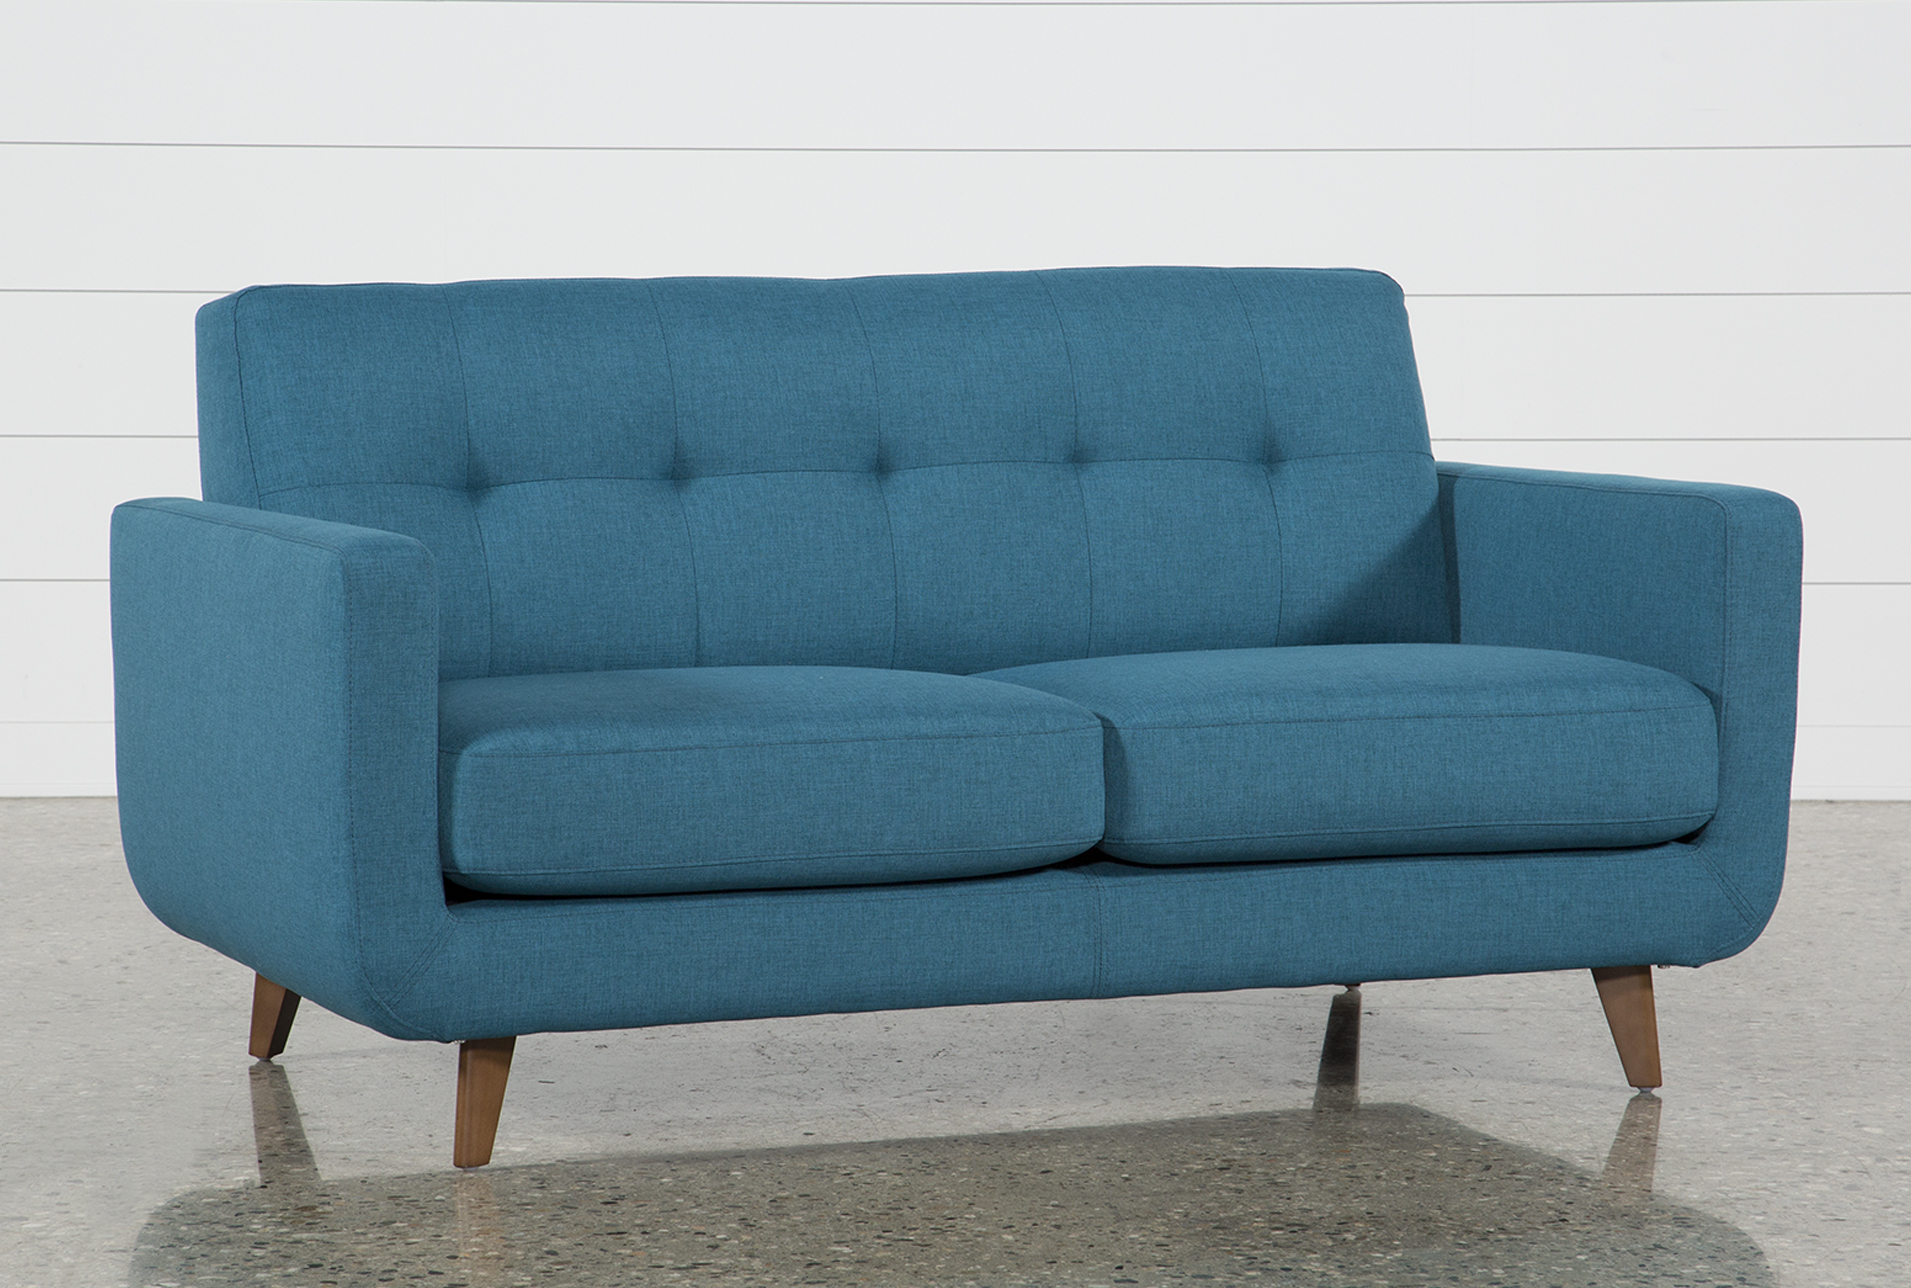 Allie Jade Twin Plus Sleeper Sofa (Qty: 1) has been successfully added to  your Cart.